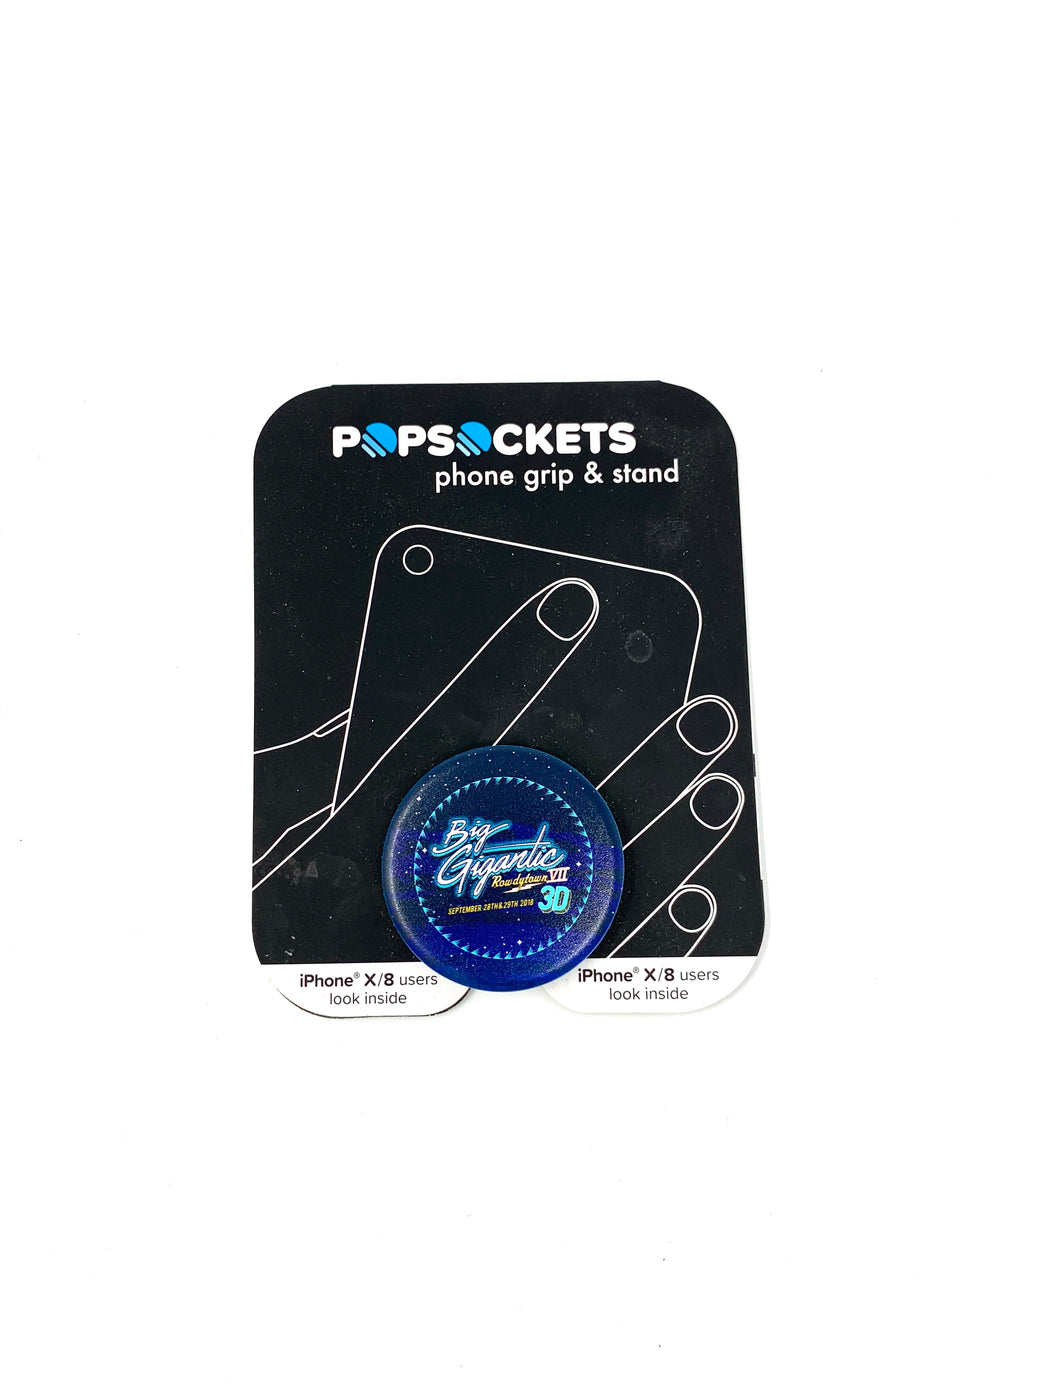 BIG GIGANTIC ROWDYTOWN VII POP SOCKET - 2018